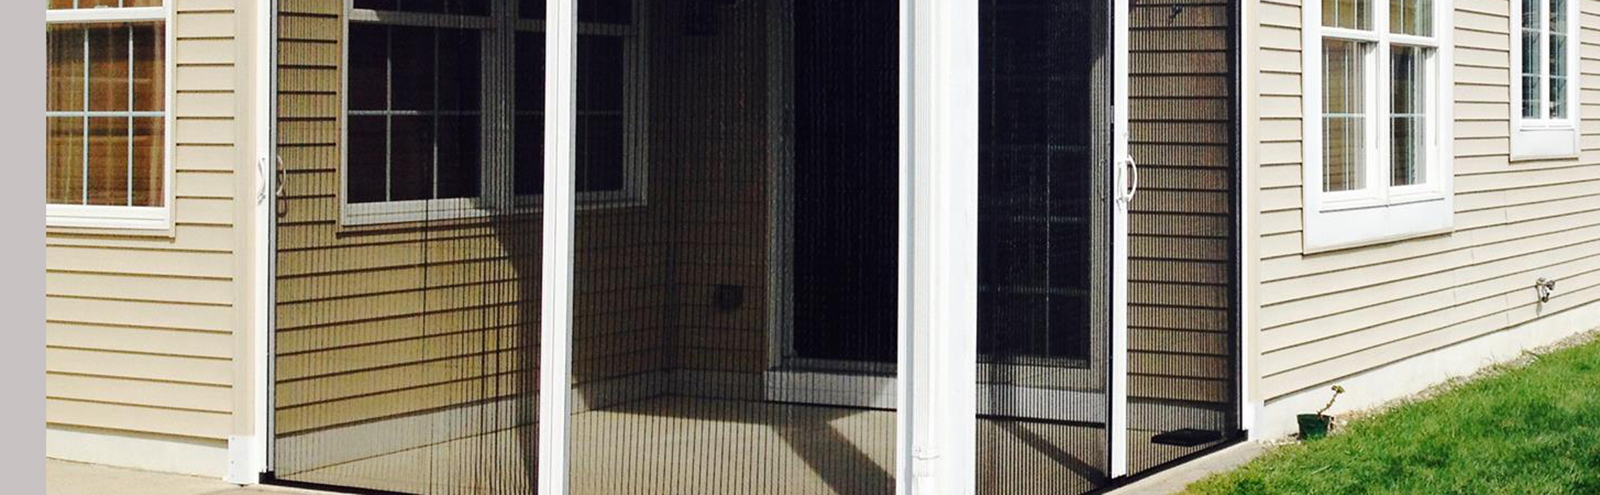 Retractable screens casco industries for Windows with retractable screens